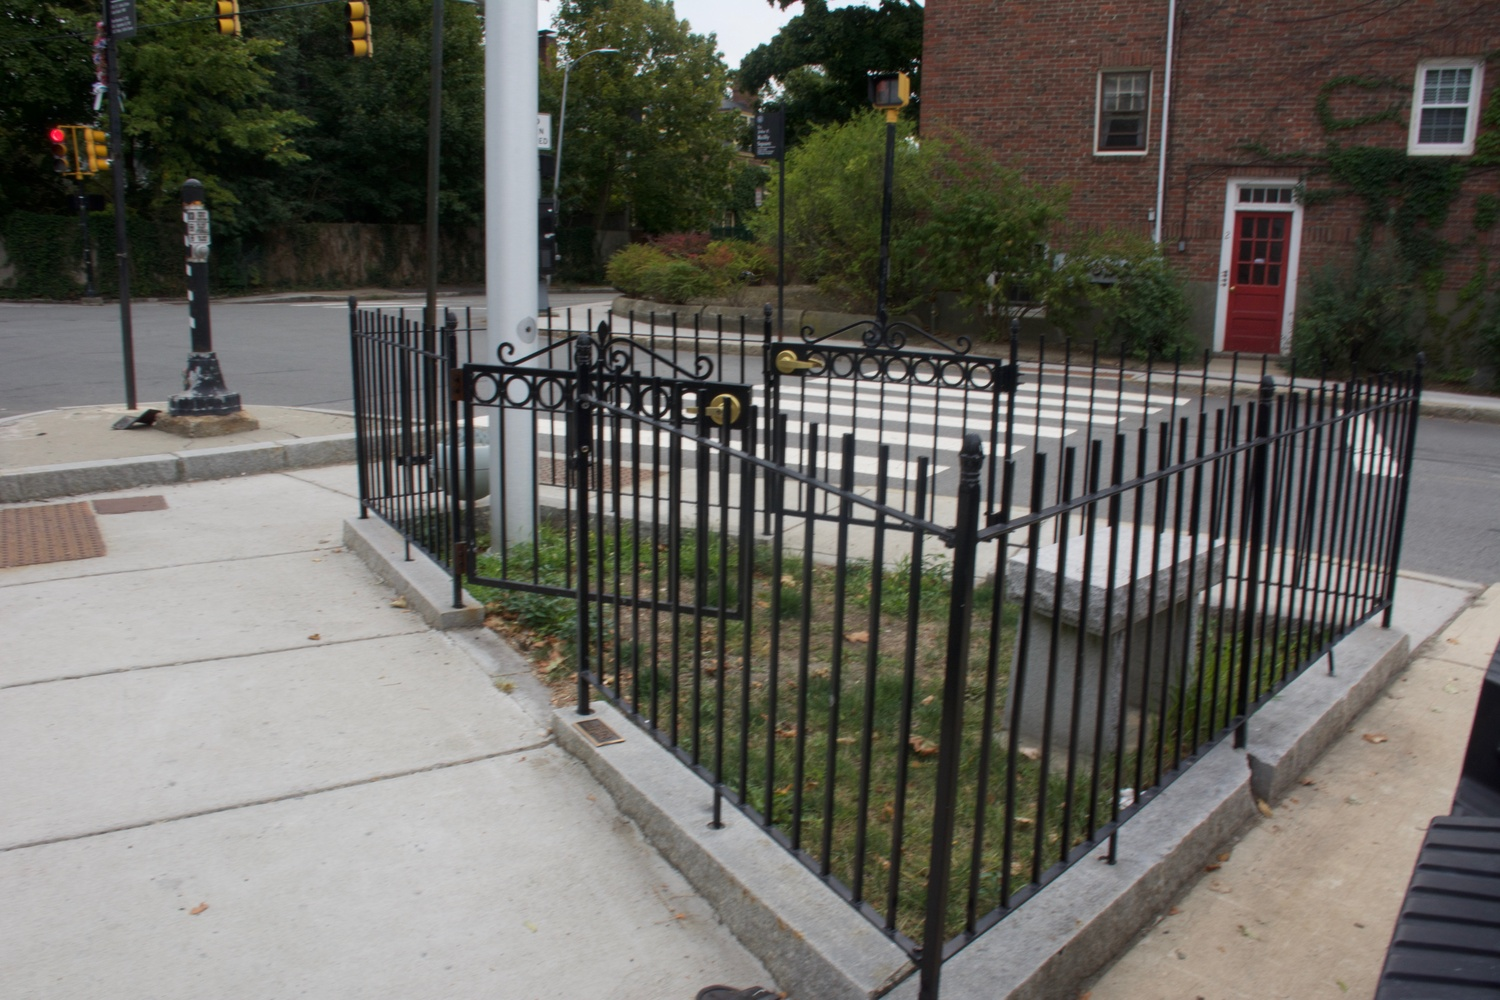 Taylor Square, the smallest park in Cambridge MA at just 57 square feet, is located in front of Engine 8 Fire Station.